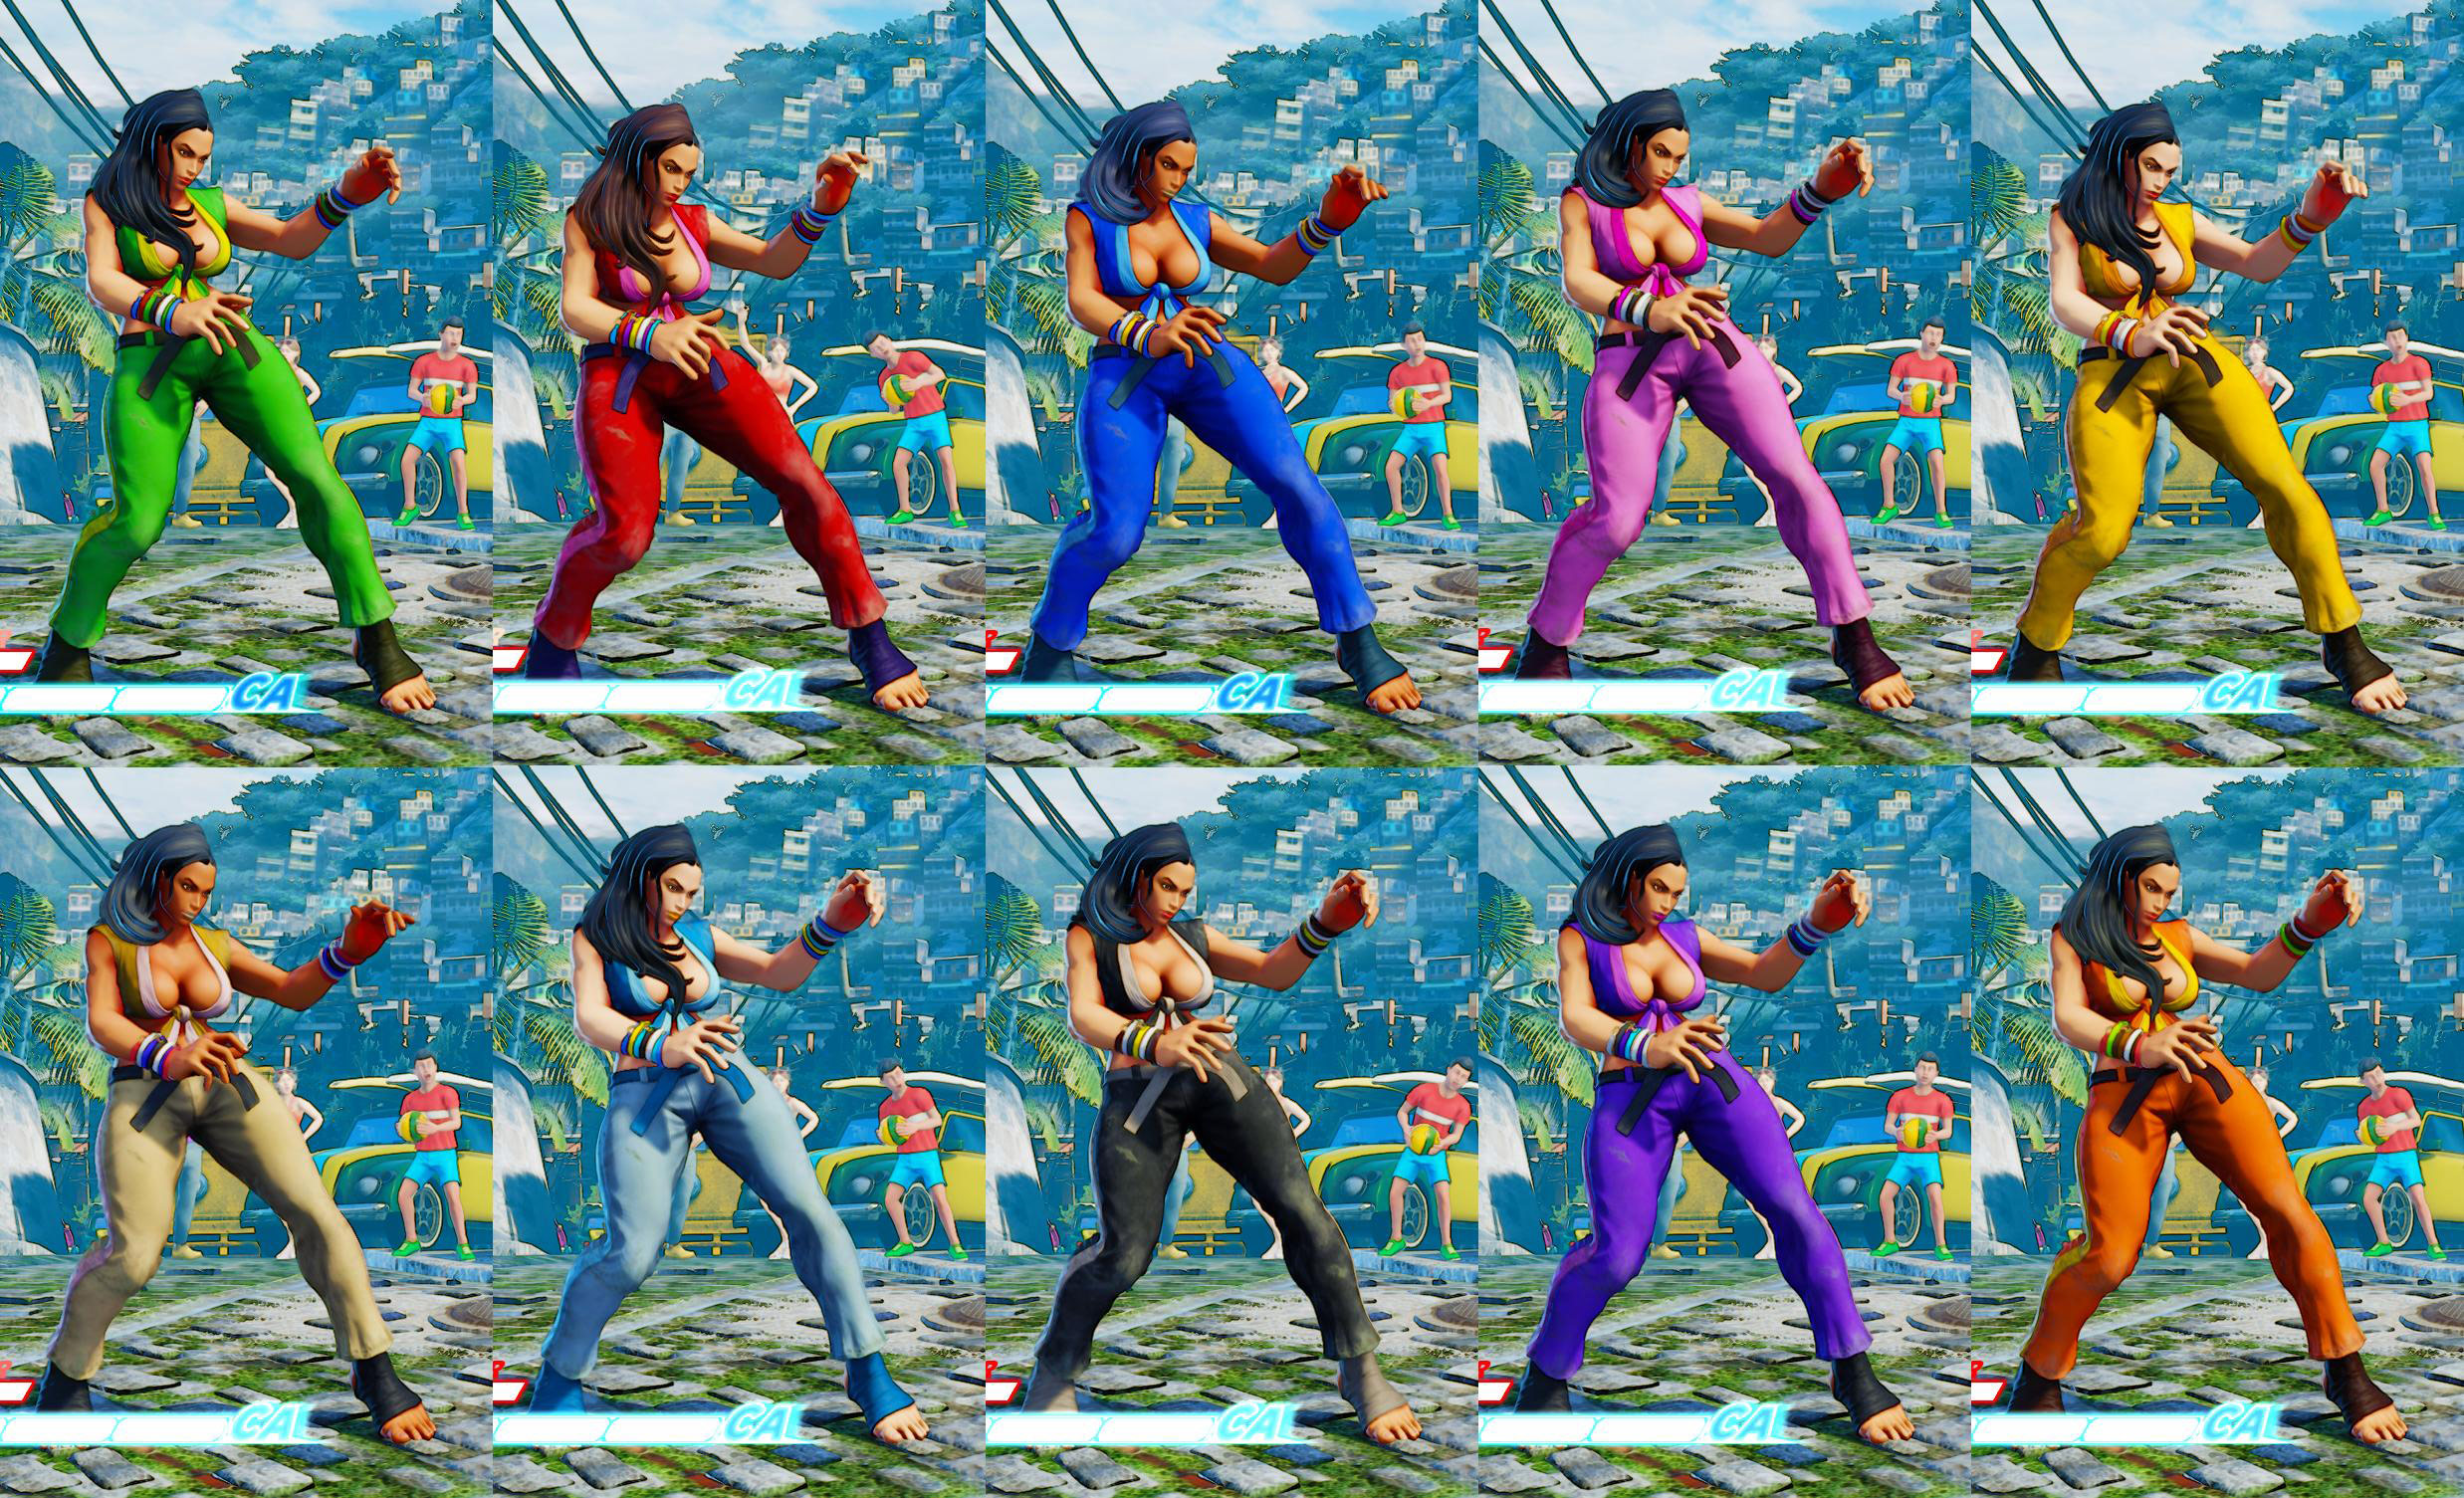 Street Fighter 5 colors for default costumes 1 out of 16 image gallery